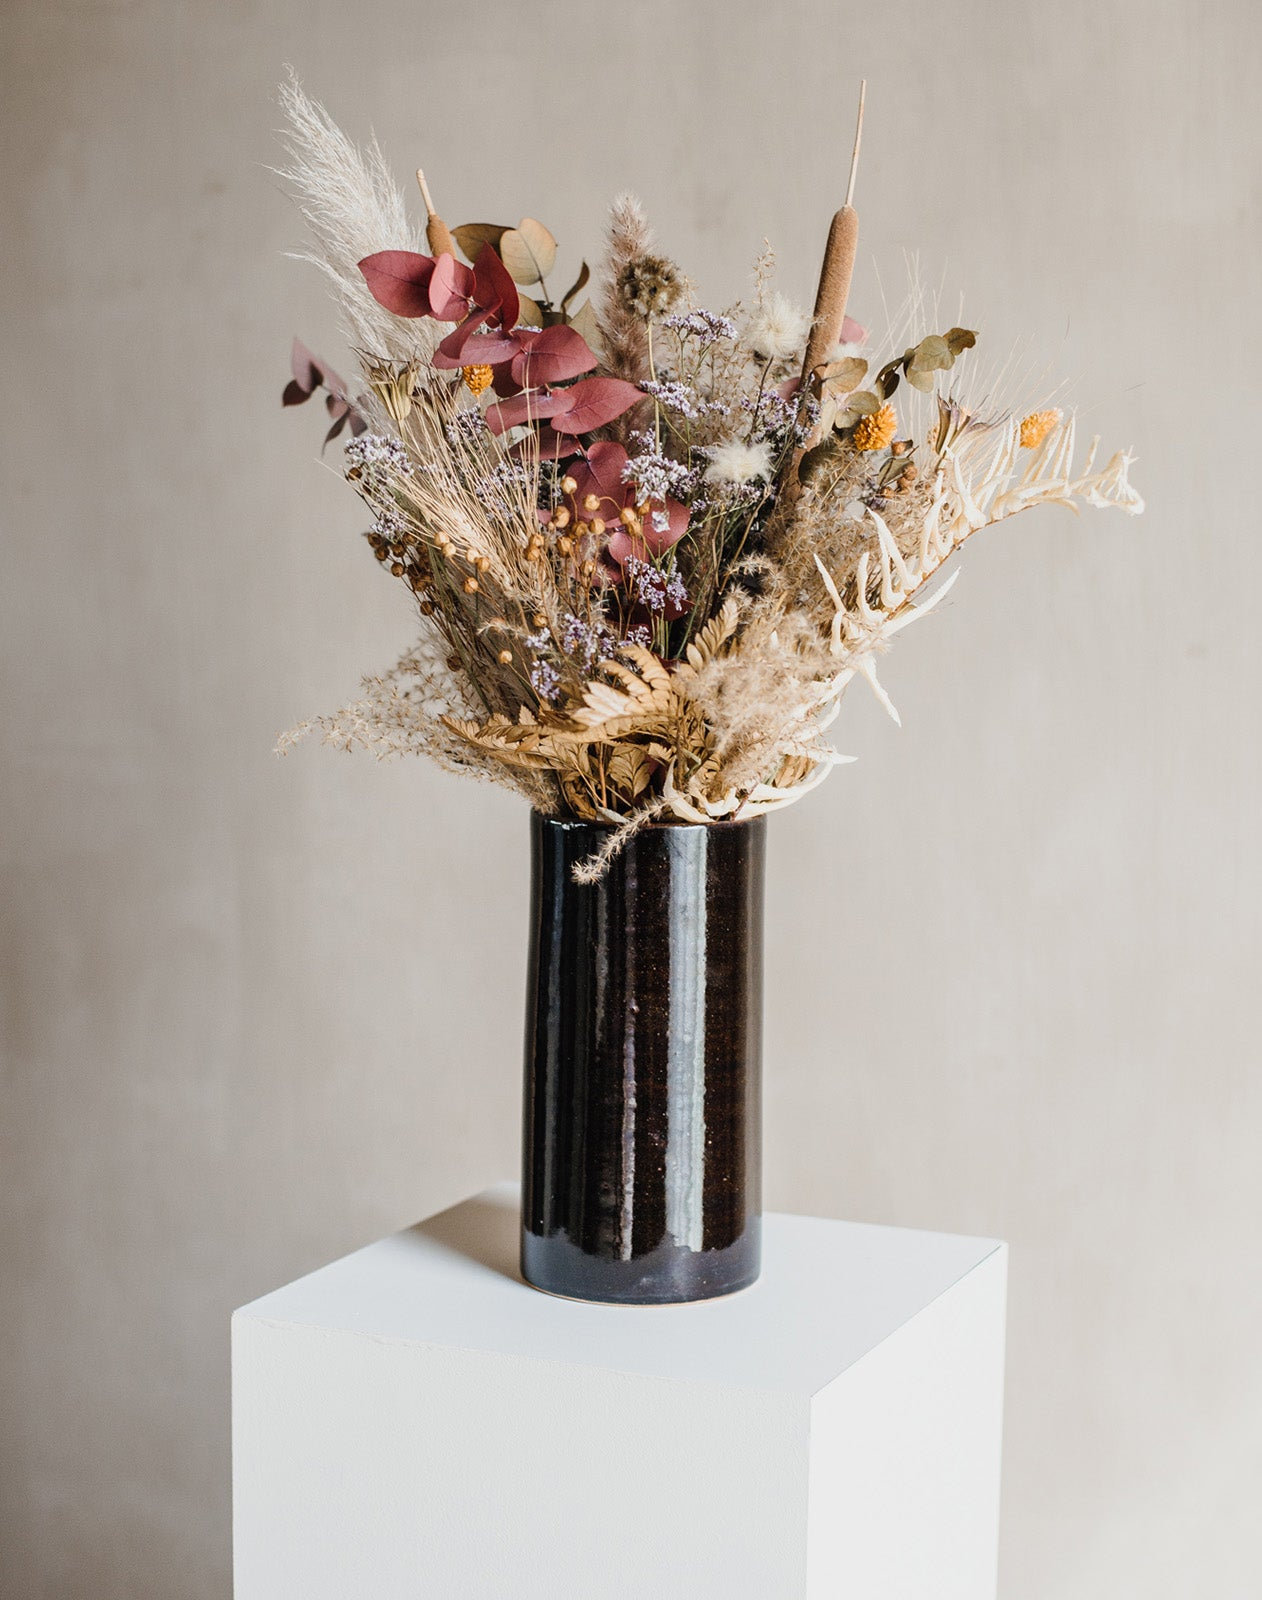 Wild dried flowers - Large